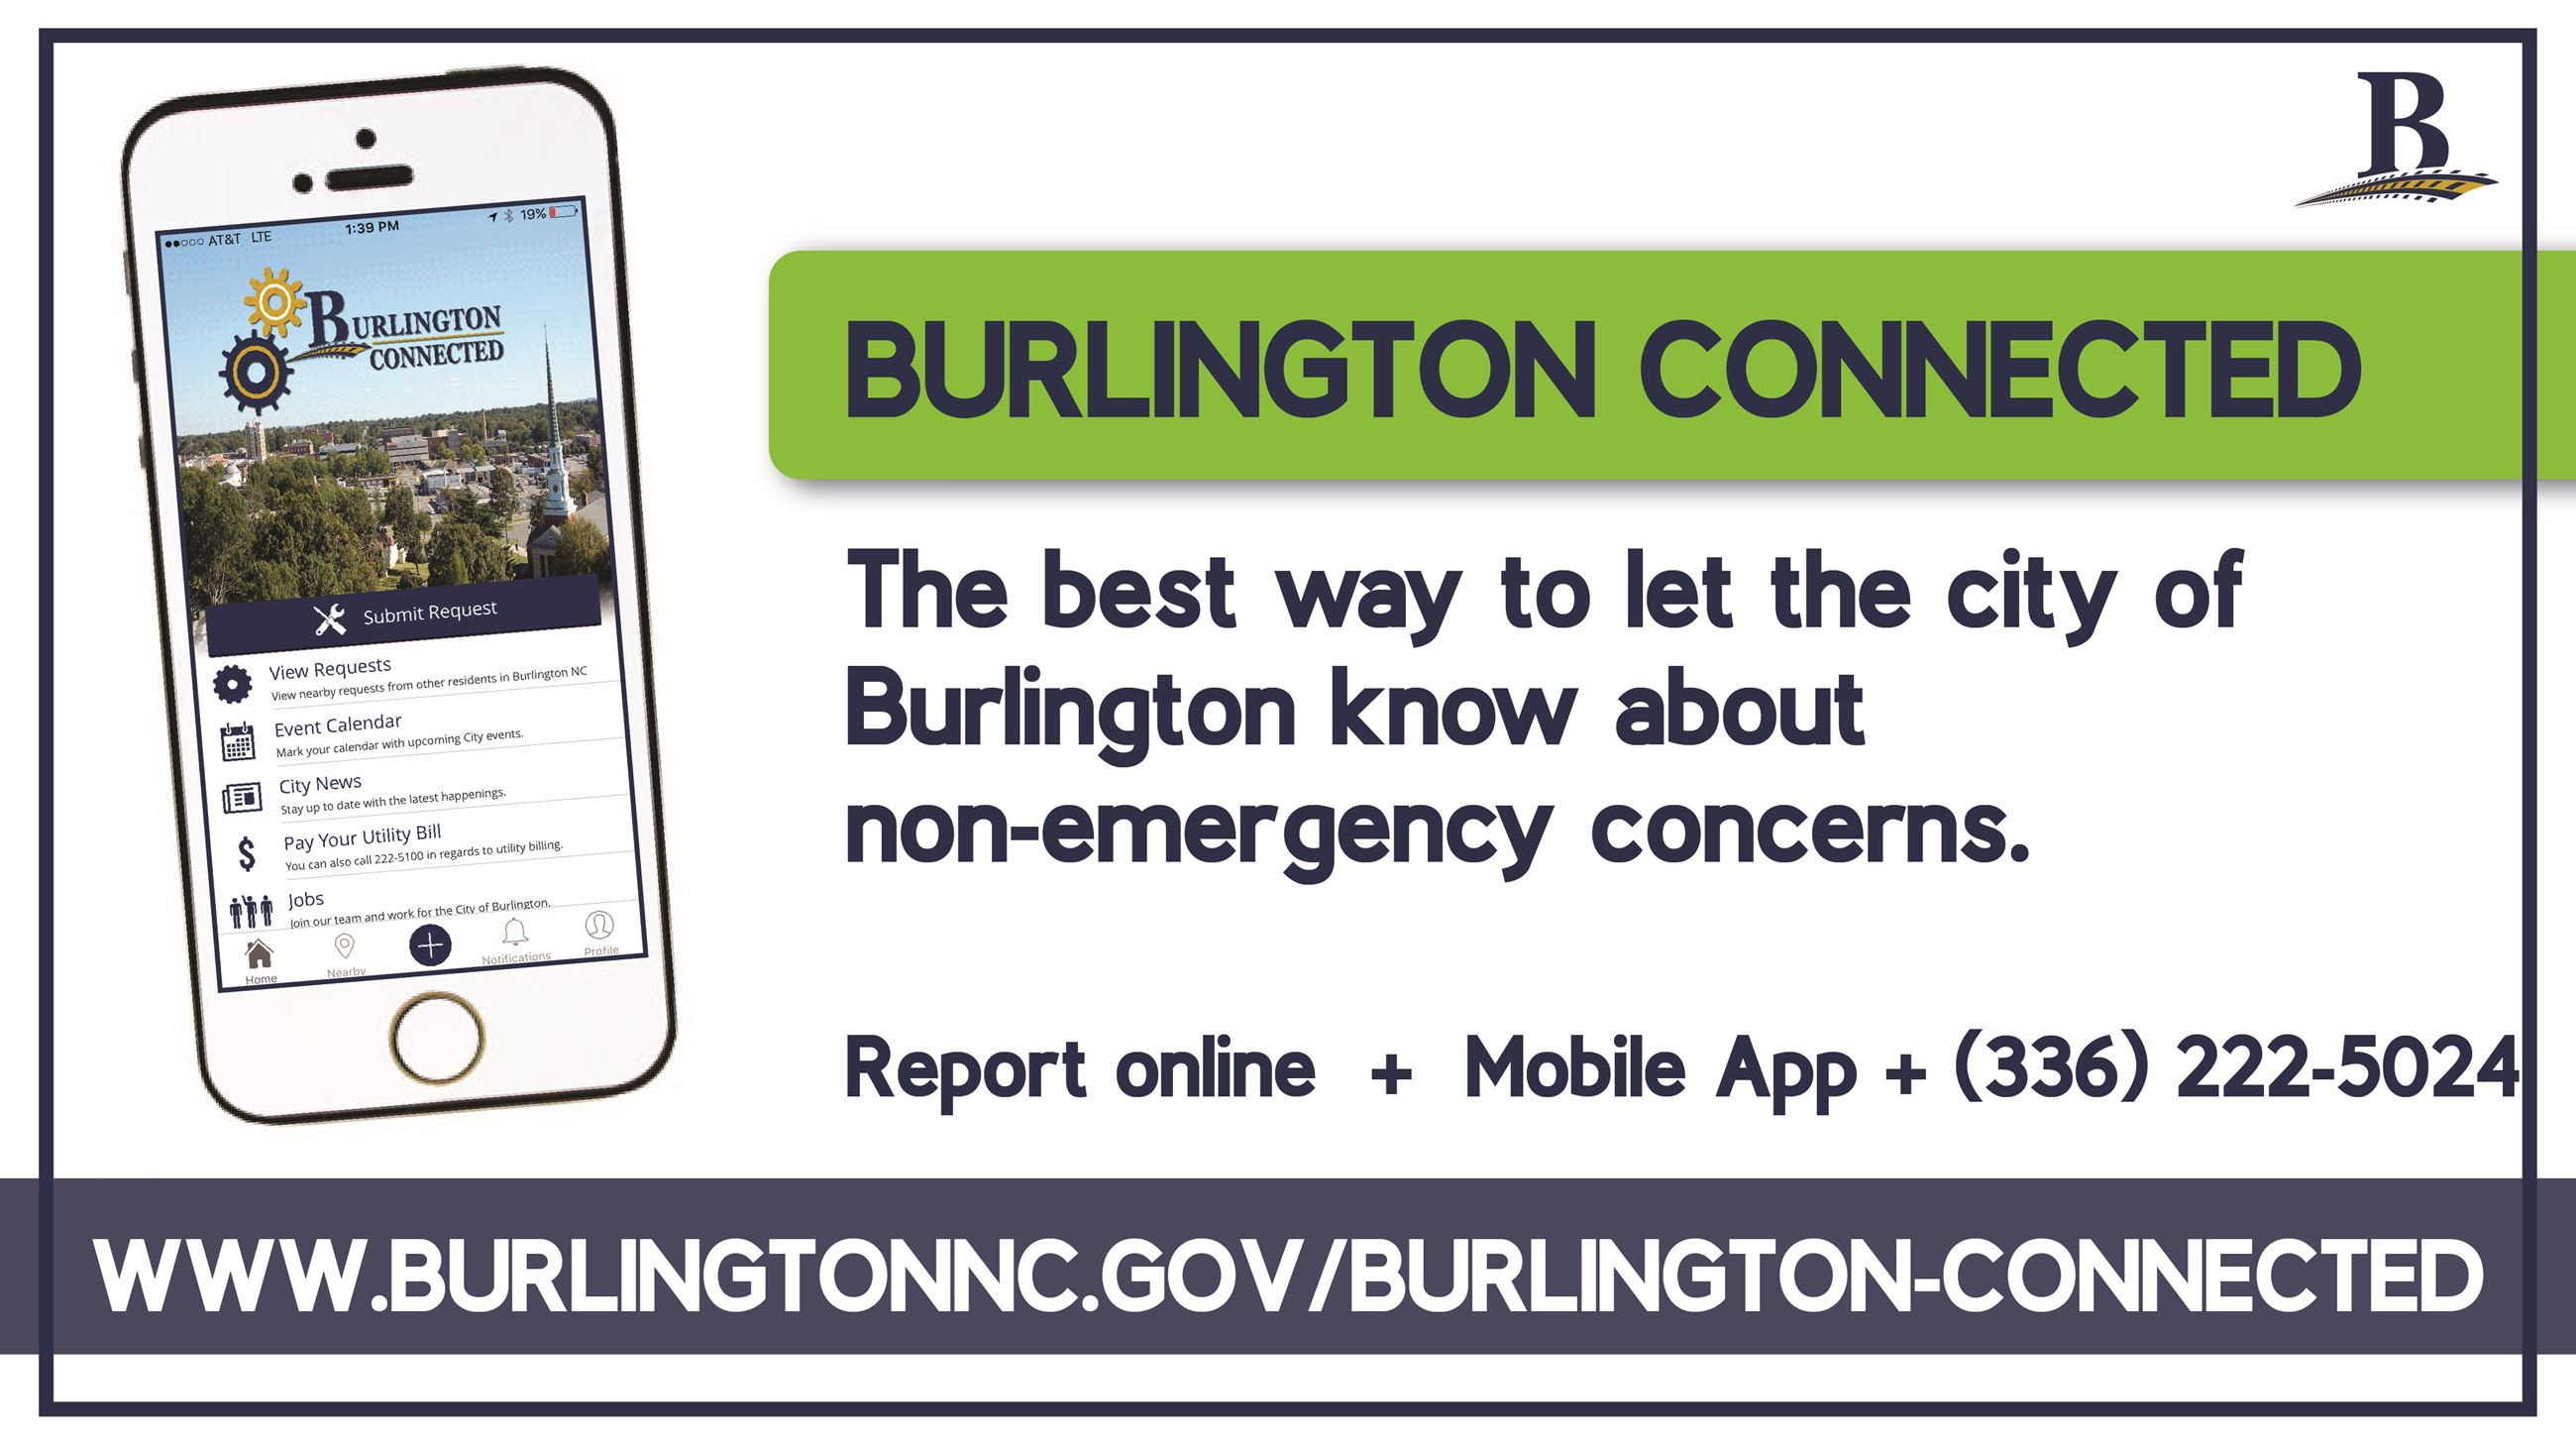 burlington connected-01-01